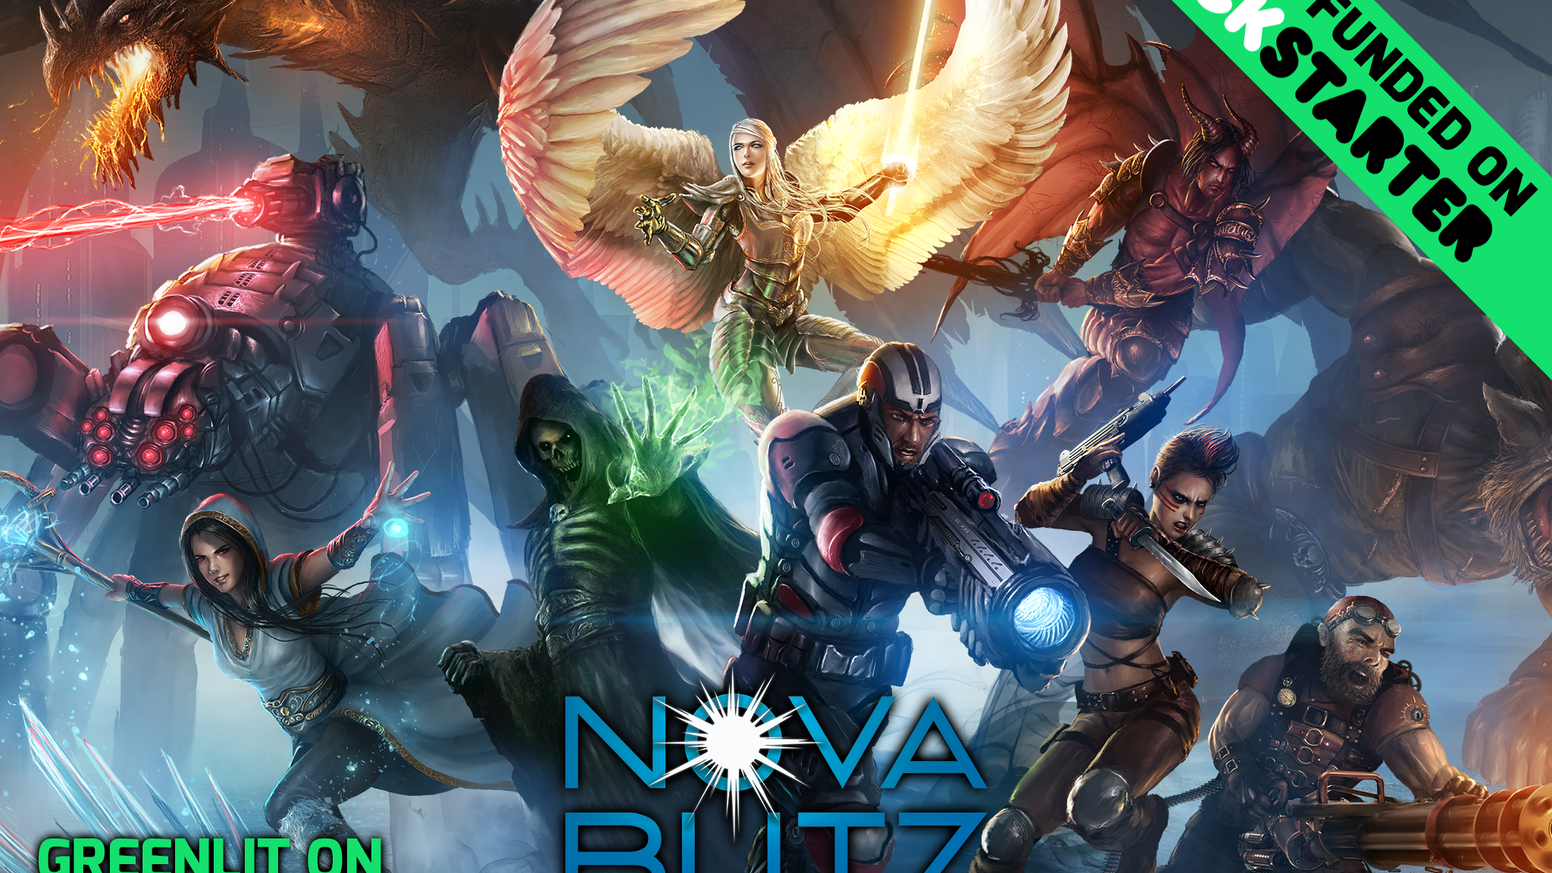 An innovative new CCG. Games are quick, with simultaneous real-time play, and combat that rewards intelligence and bluffing. Nova Blitz is live on Steam Early Access!